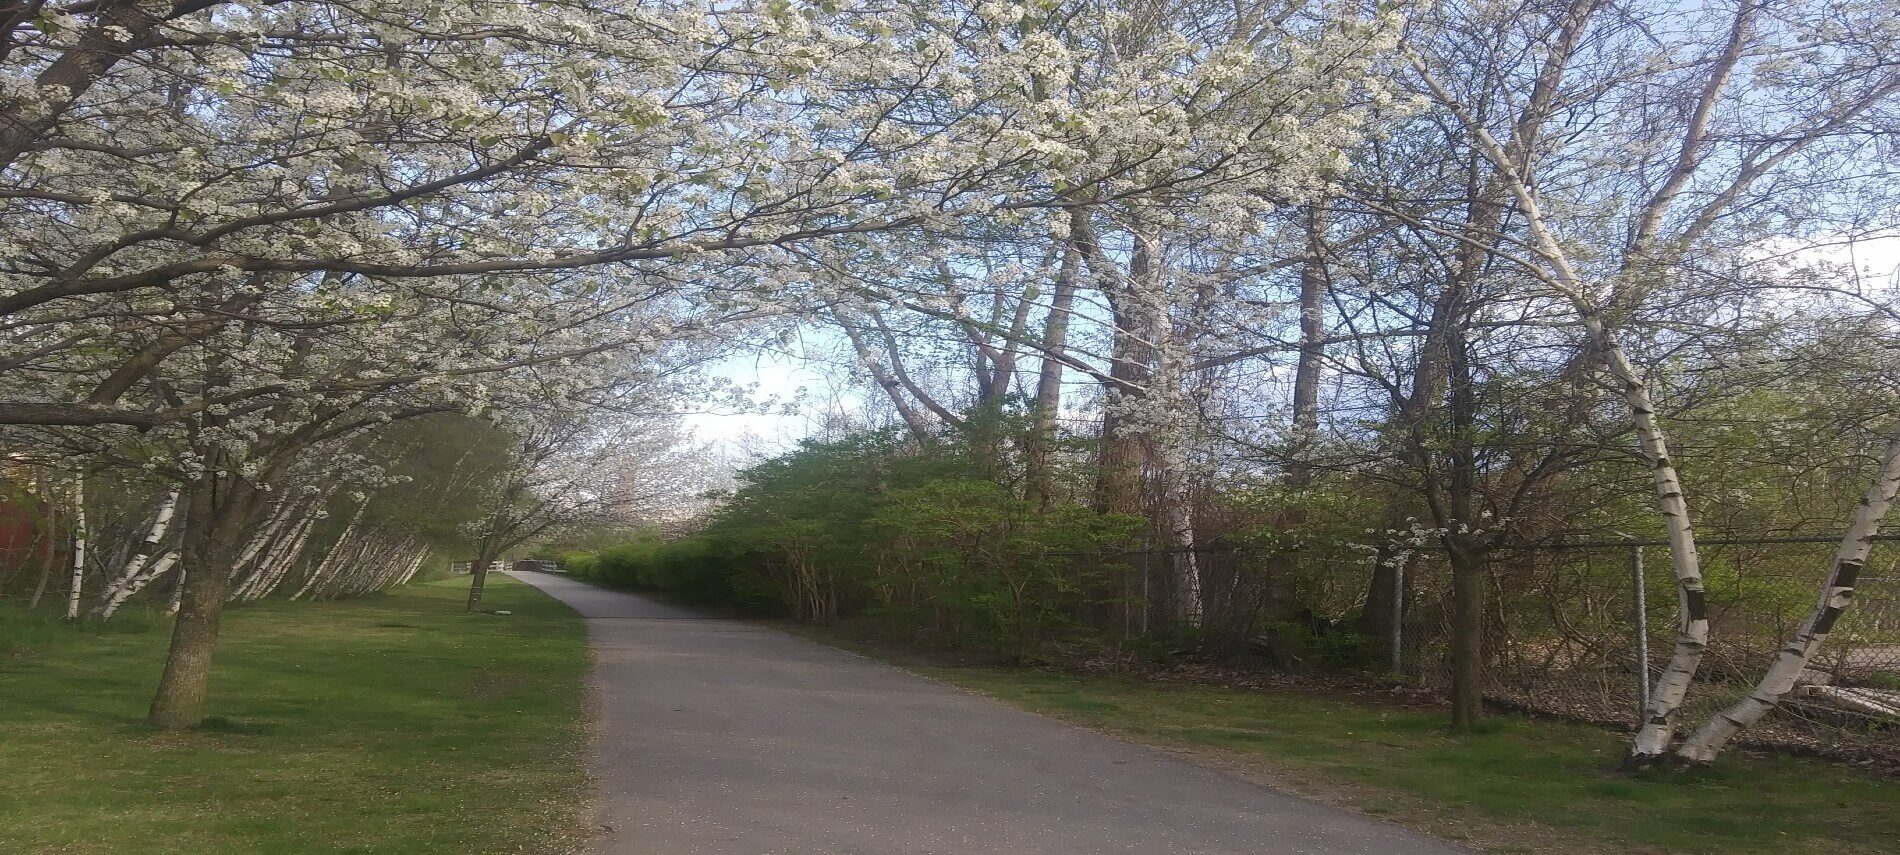 Flowering trees line both sides of a paved path